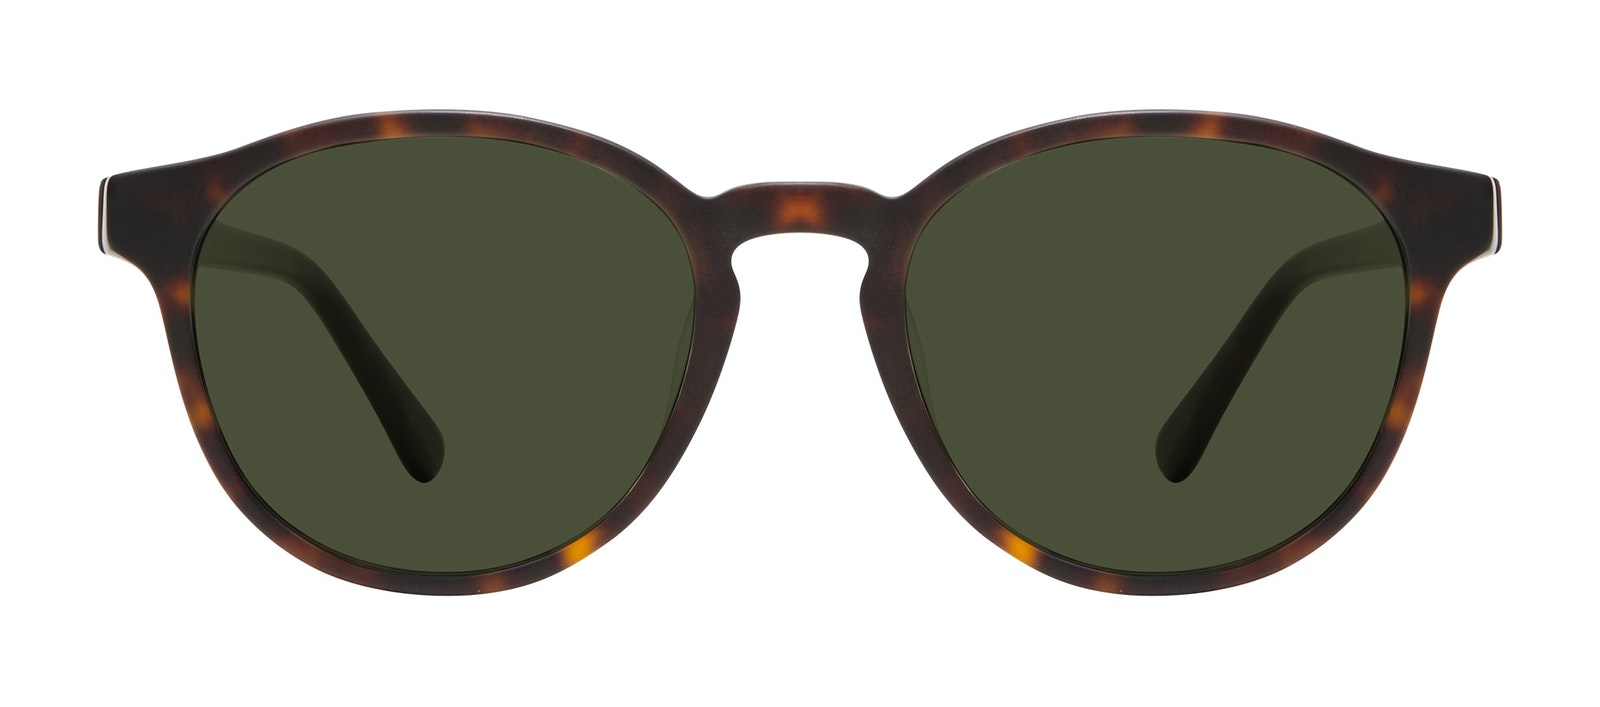 Affordable Fashion Glasses Round Sunglasses Men Aussie Matte Tortoise Front